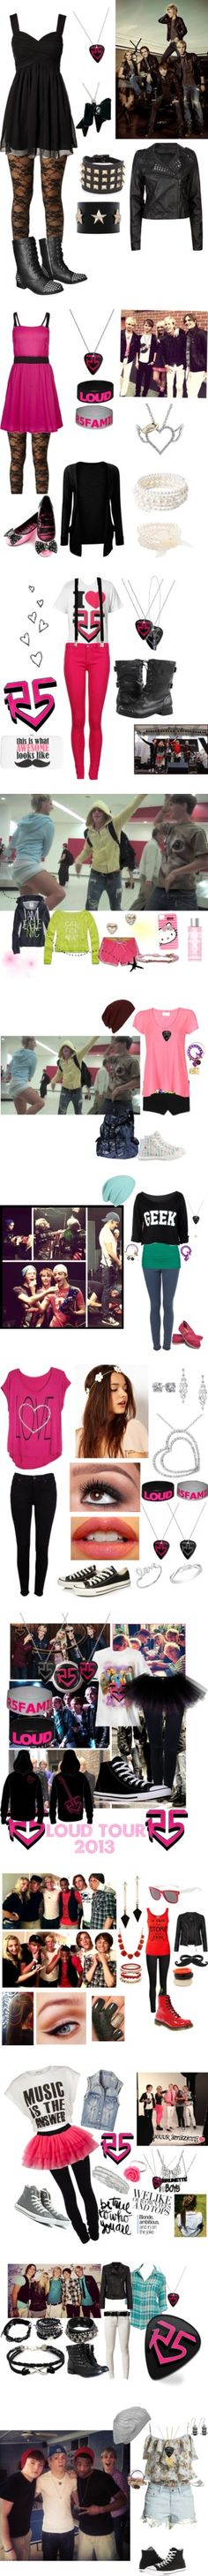 """R5"" by godzlilhelper ❤ liked on Polyvore"